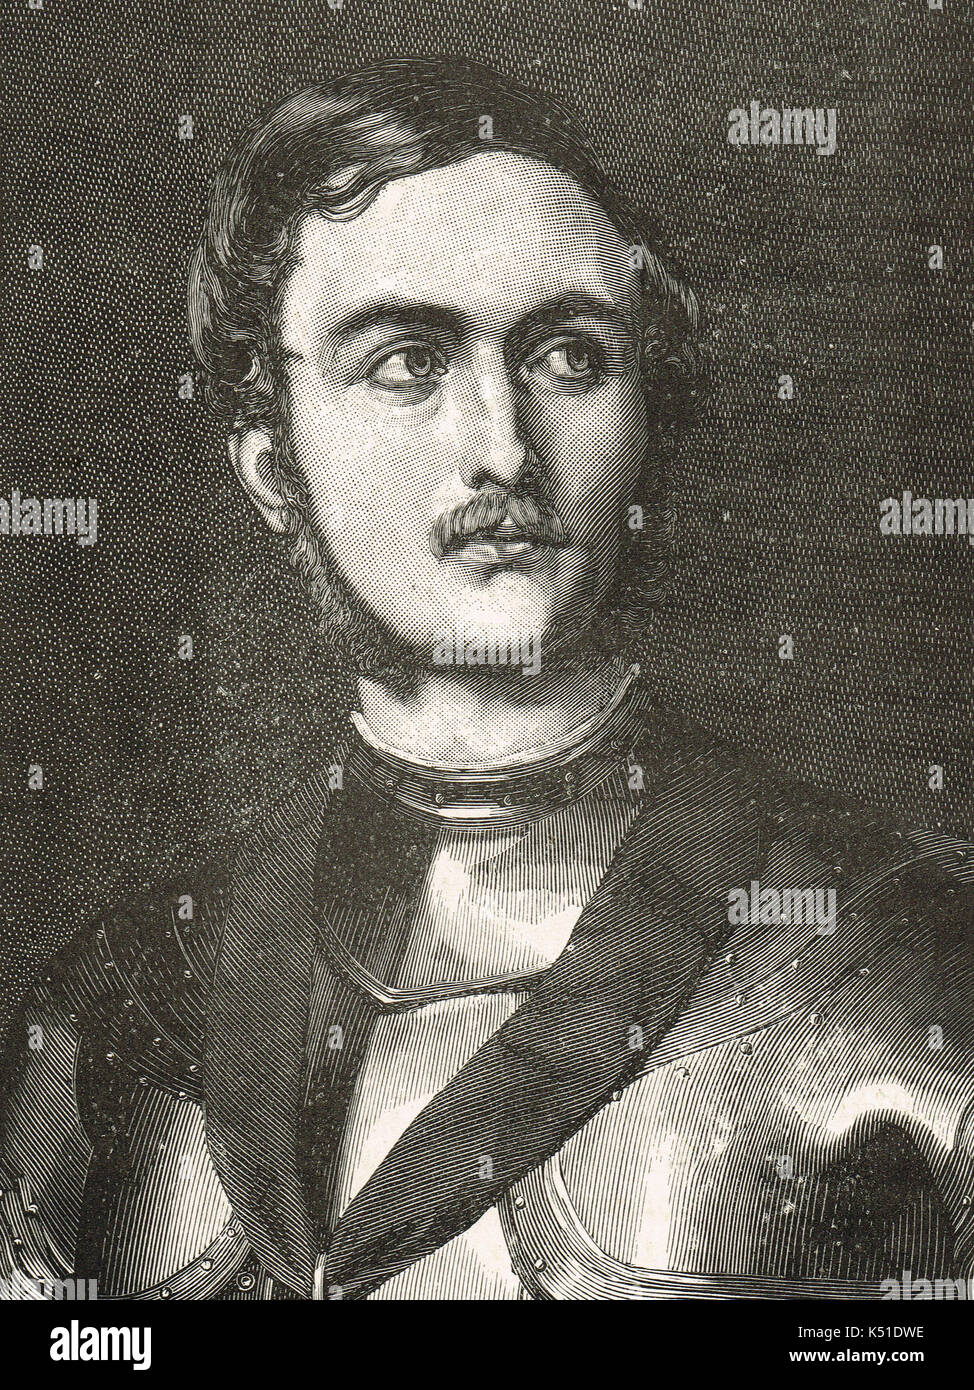 Prince Albert as a Knight in armour, 1844 - Stock Image